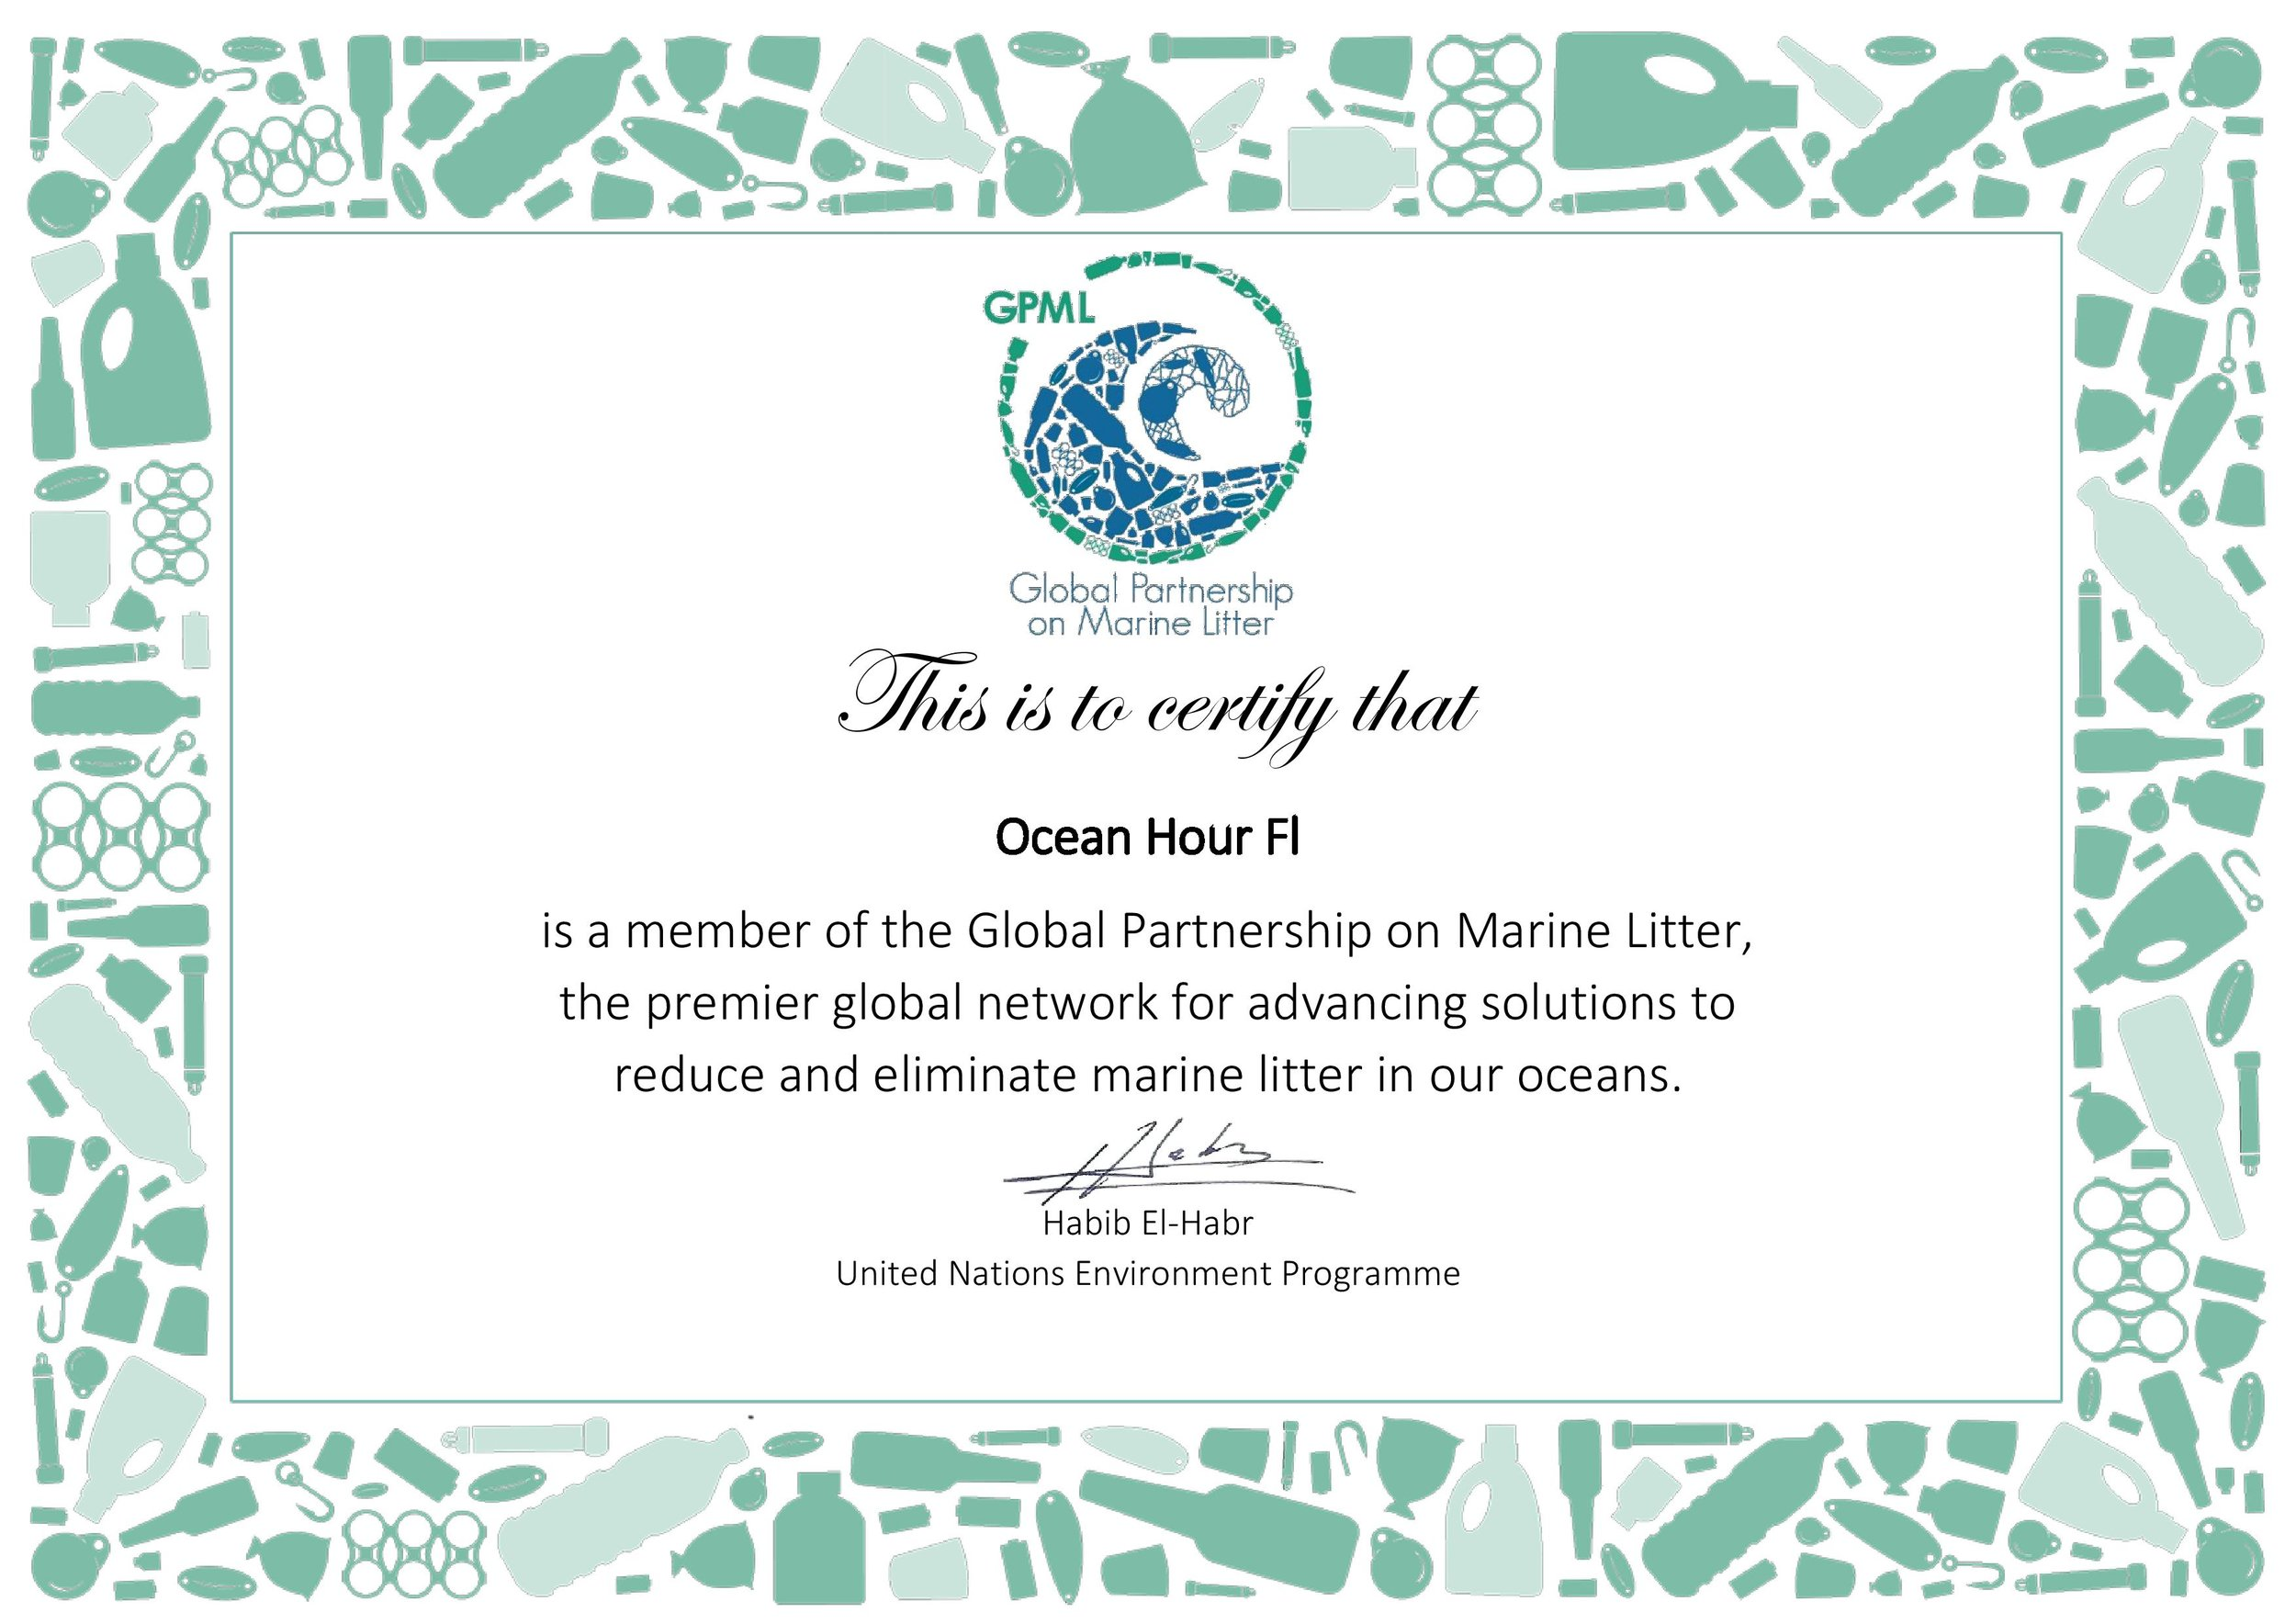 """Global Partnership on Marine Litter"" - sponsored by the United Nations Environment Programme"